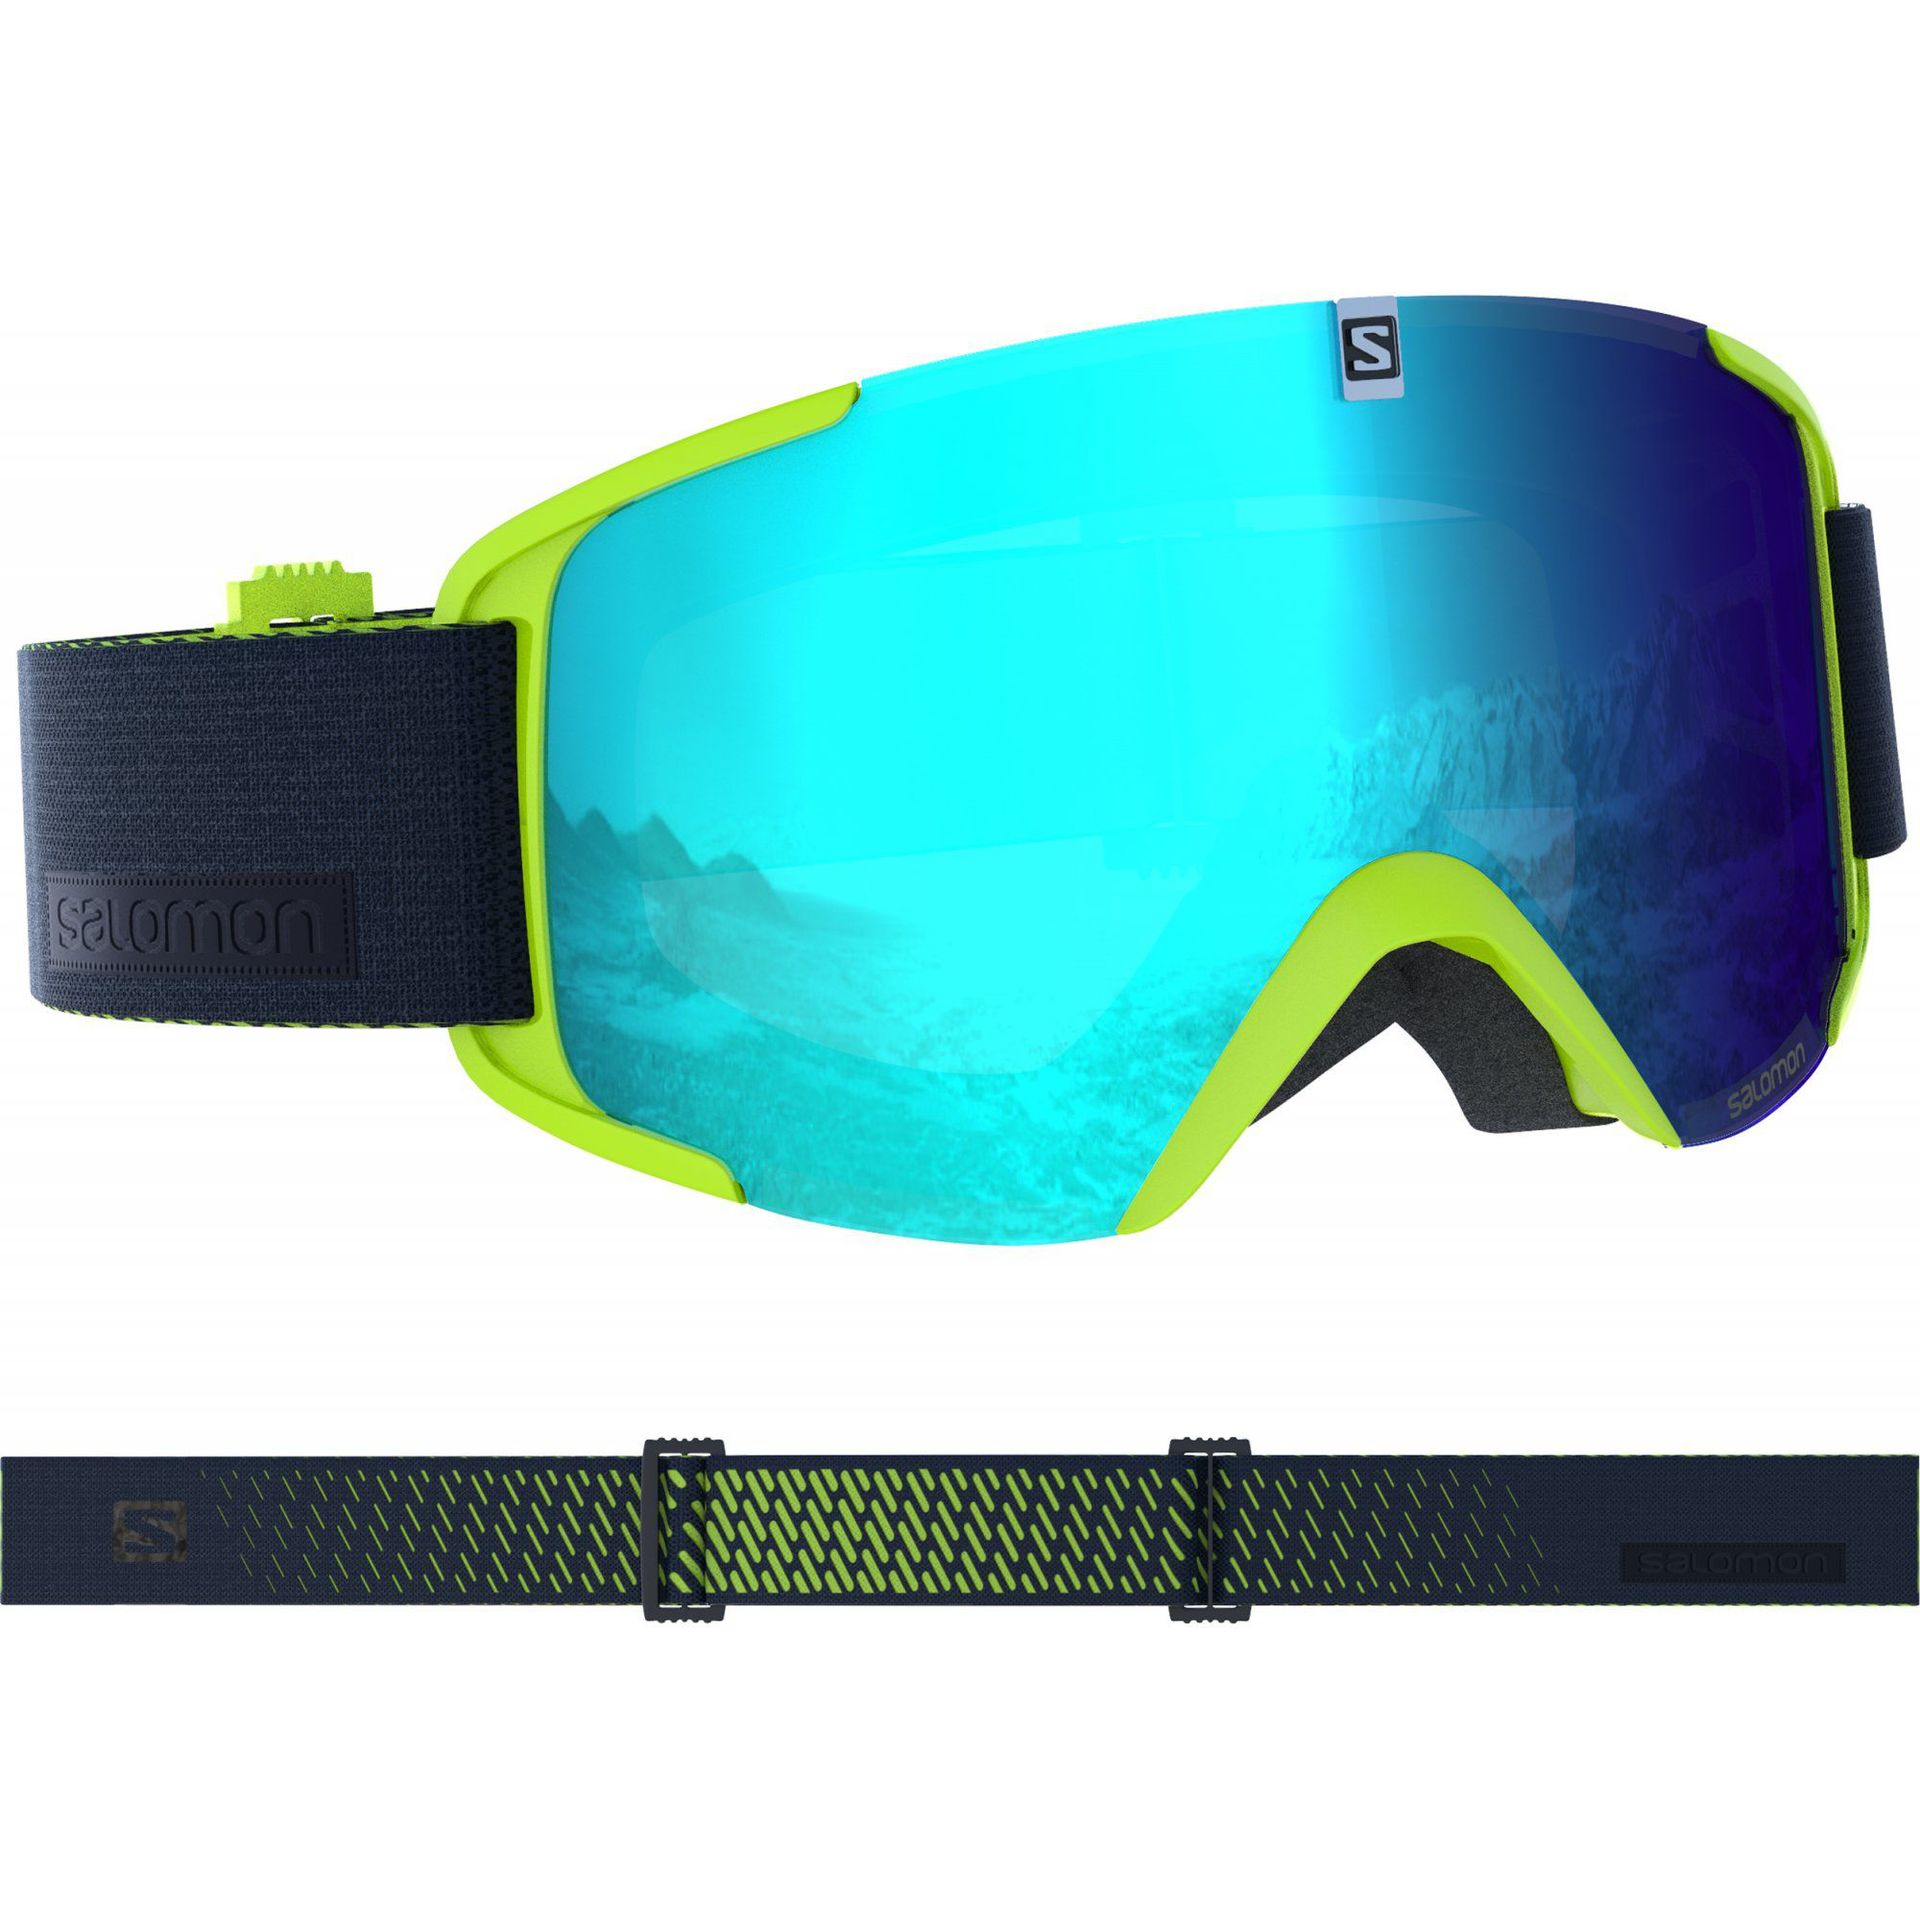 GOGLE SALOMON XVIEW ACID LIME 399033